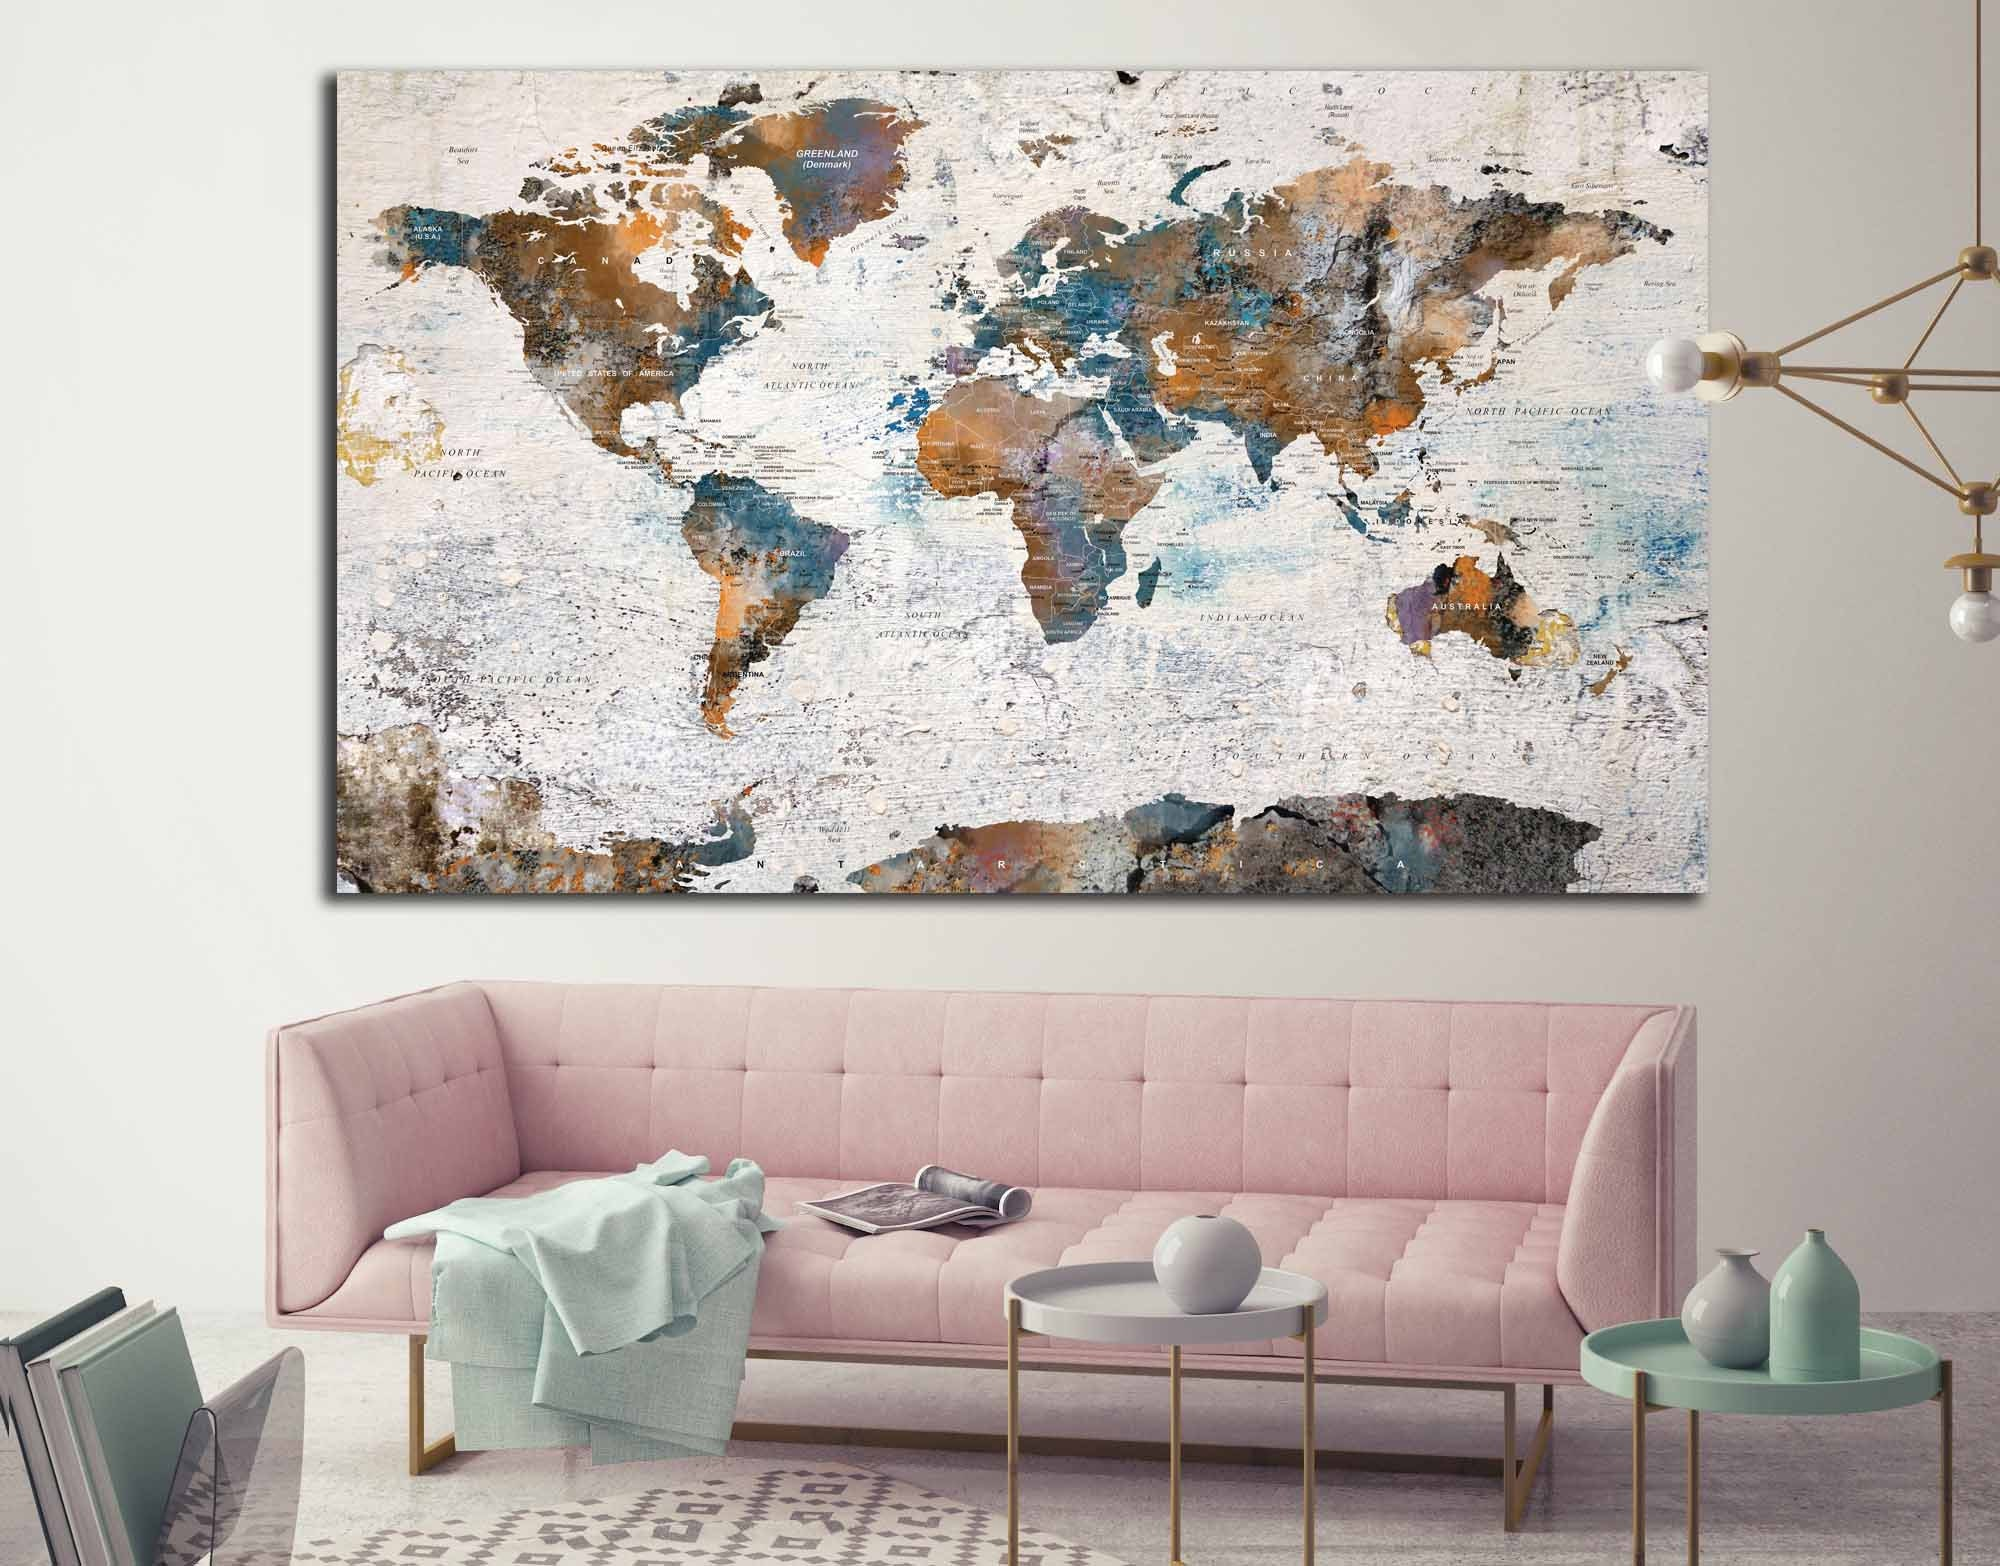 World map canvas single panelworld map wall artworld mappush pin world map canvas single panelworld map wall artworld mappush pin map canvasworld map printworld map largeworld map abstract art gumiabroncs Image collections